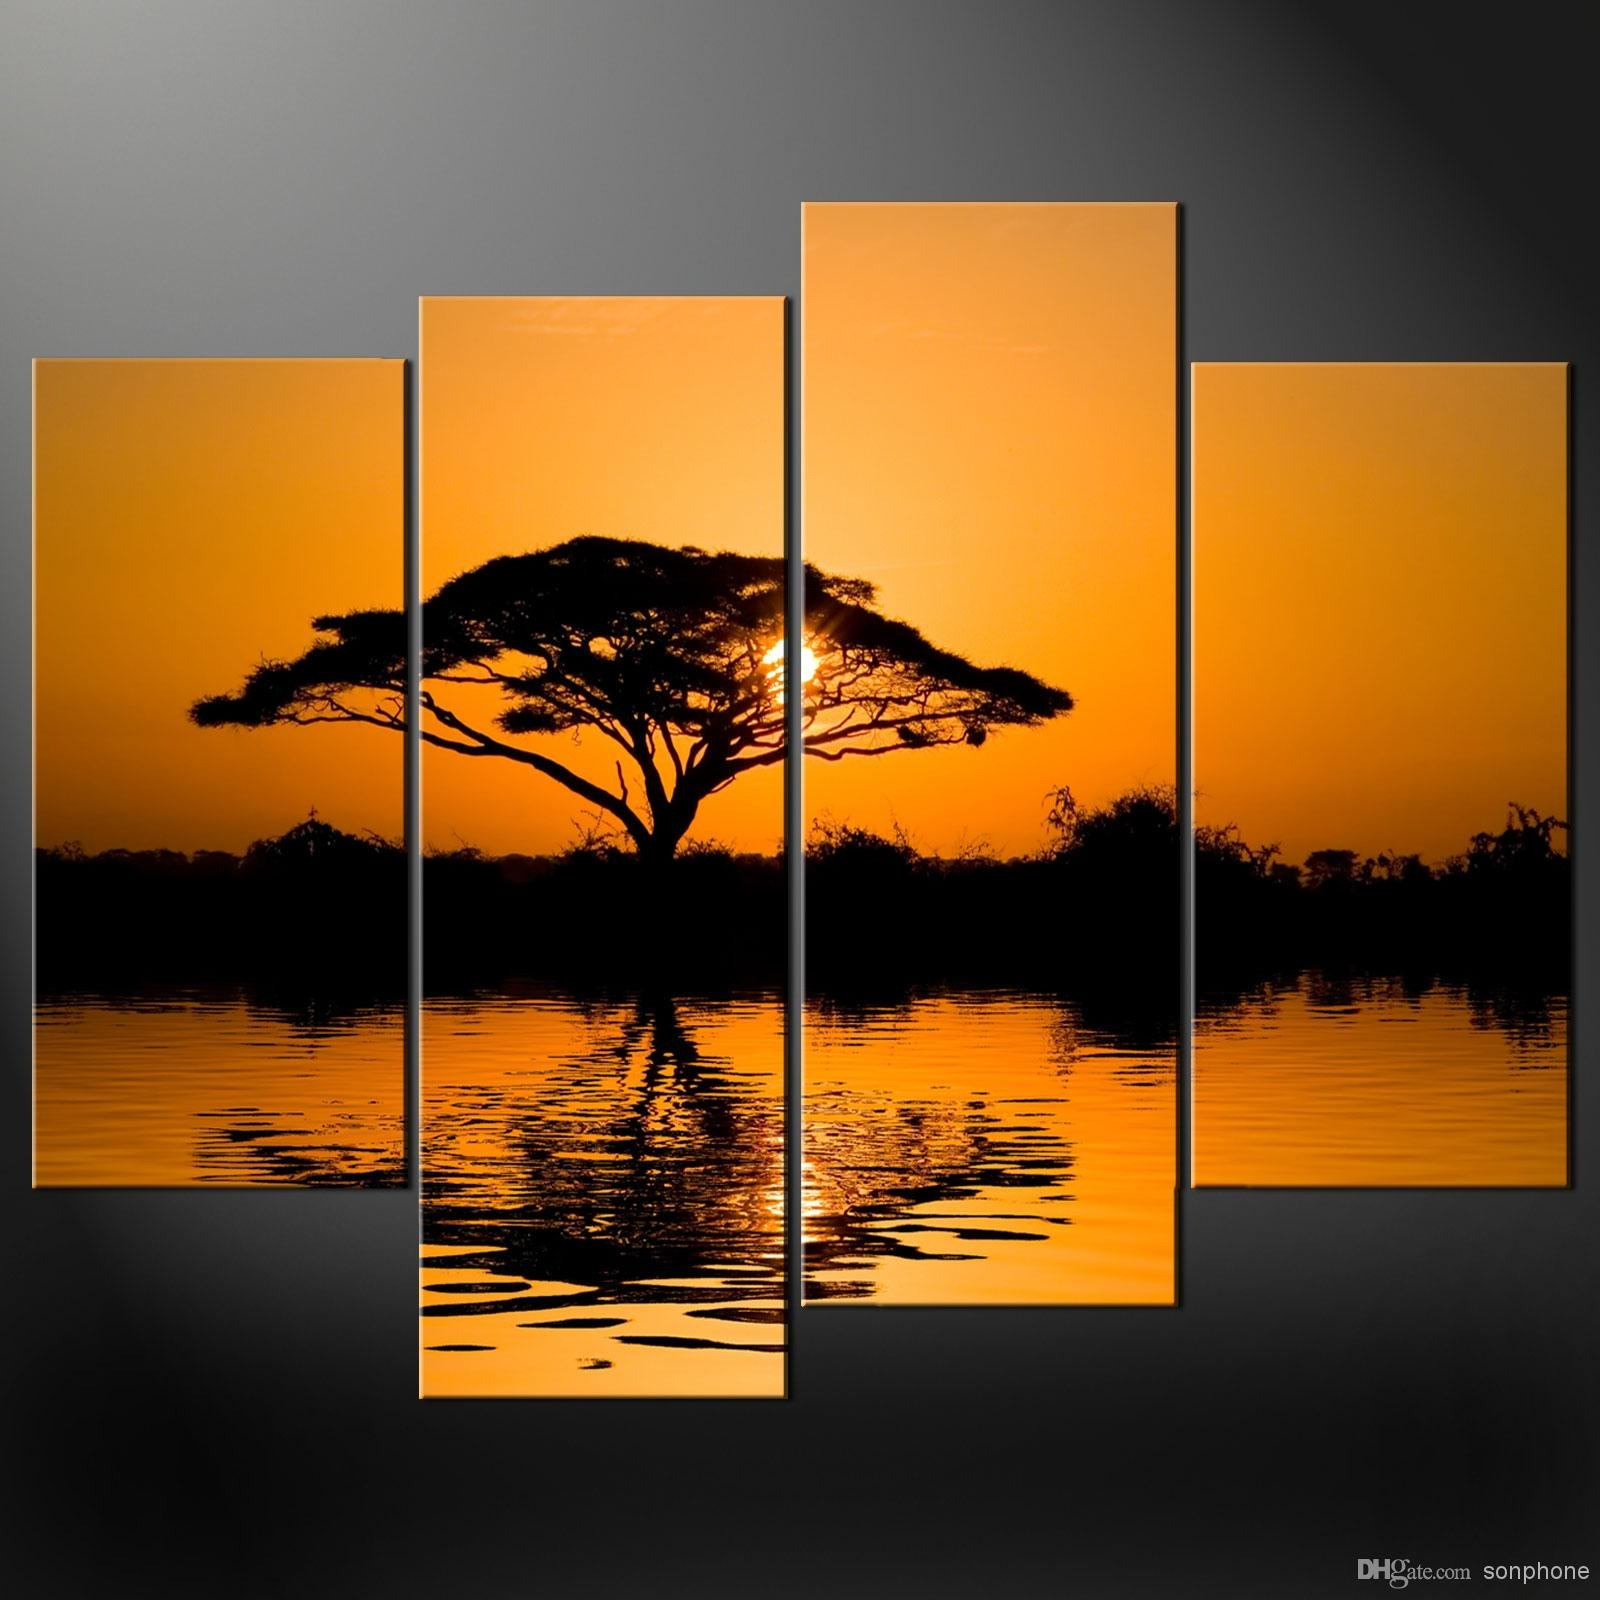 Framed 4 Panel Large African Wall Art Decor Modern Sunset Oil Pertaining To Most Recently Released African Wall Art (View 12 of 15)